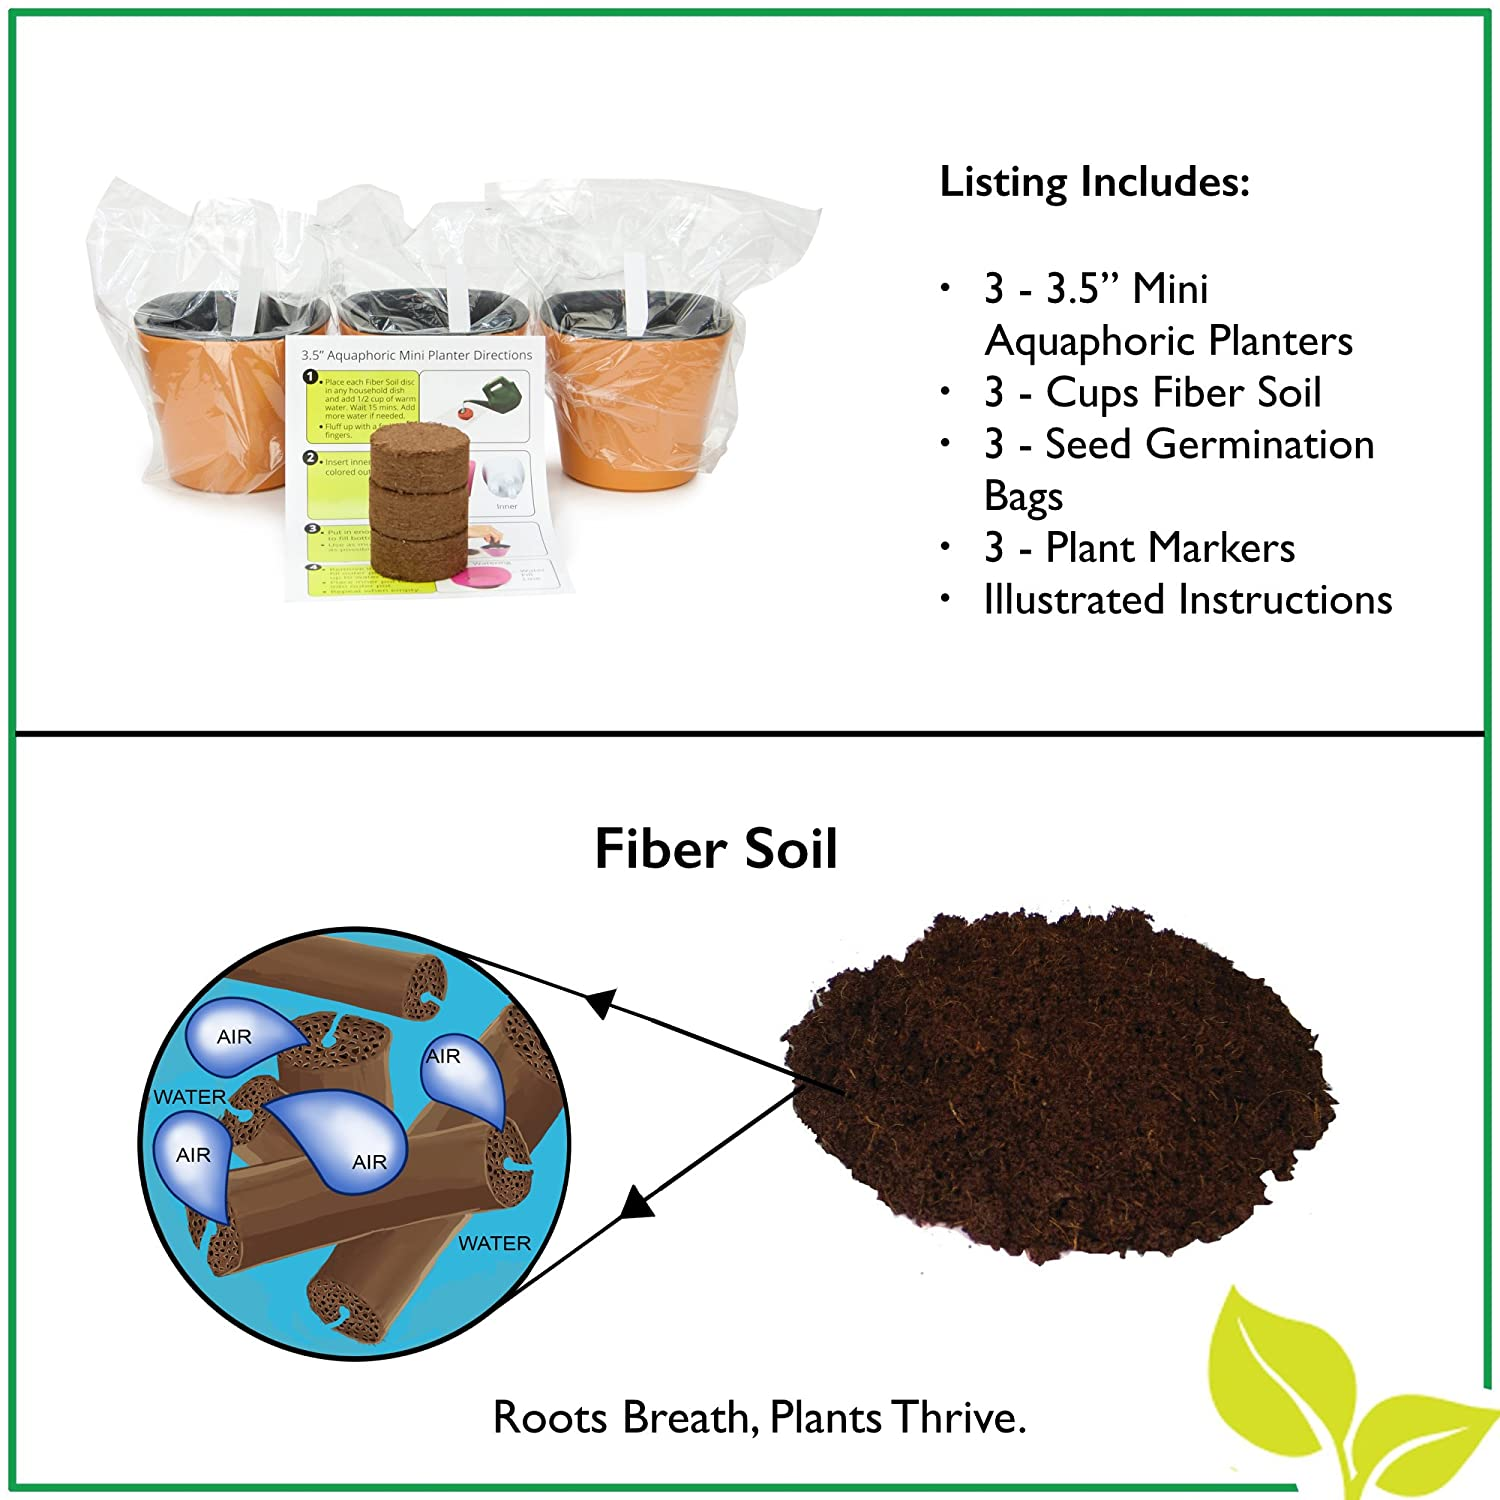 Cole planters prices - Amazon Com Self Watering Mini 3 5 Planter Pots 3 Pack Ivory Grow A Indoor Window Sill Garden Perfect For Potting Smaller House Plants Herbs